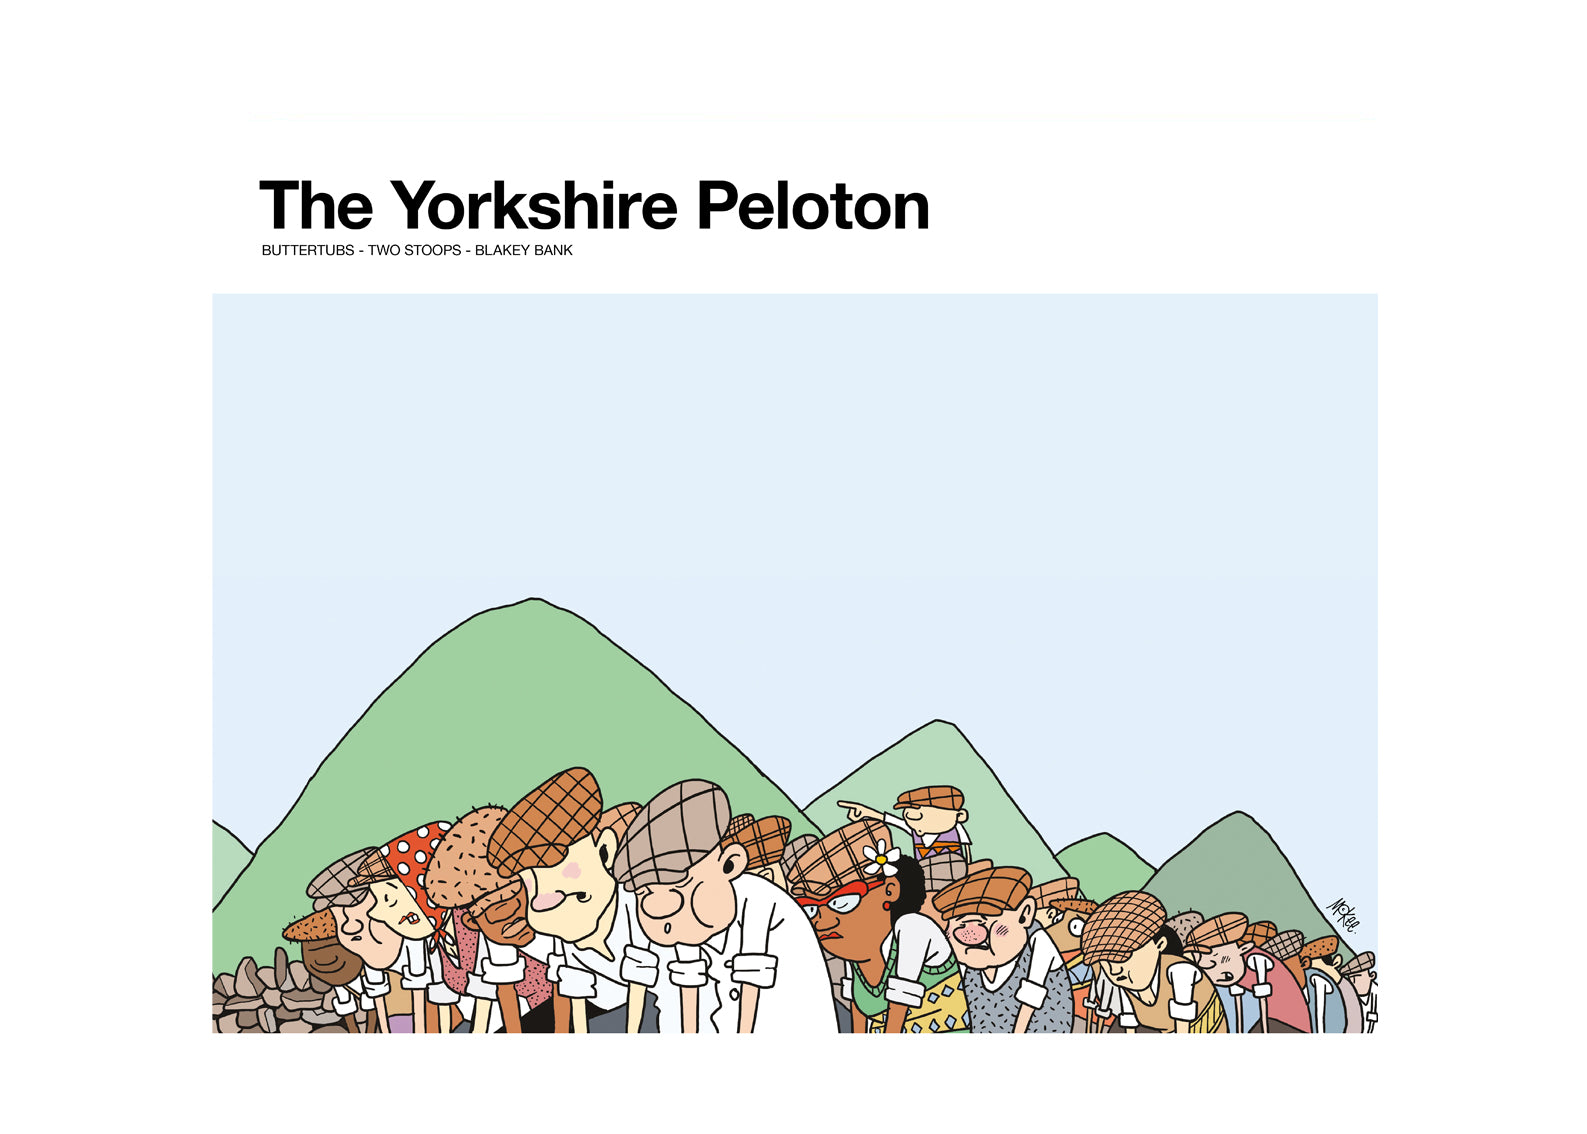 The Yorkshire Peloton